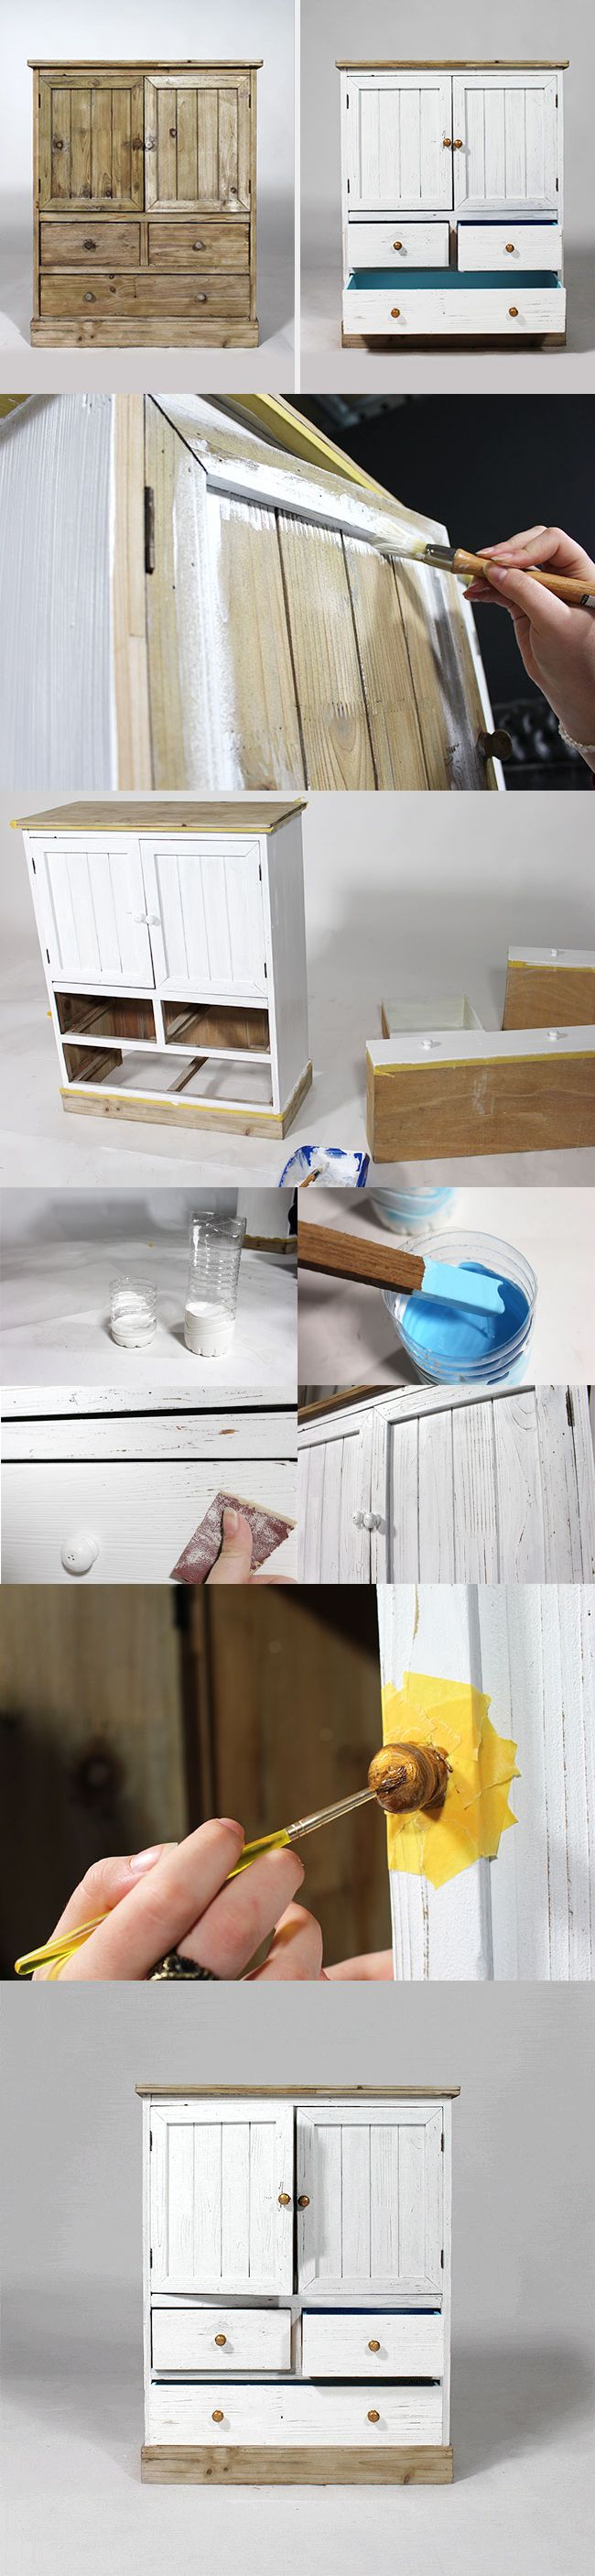 Diy customiser un meuble en bois bricolage for Customiser meuble en bois